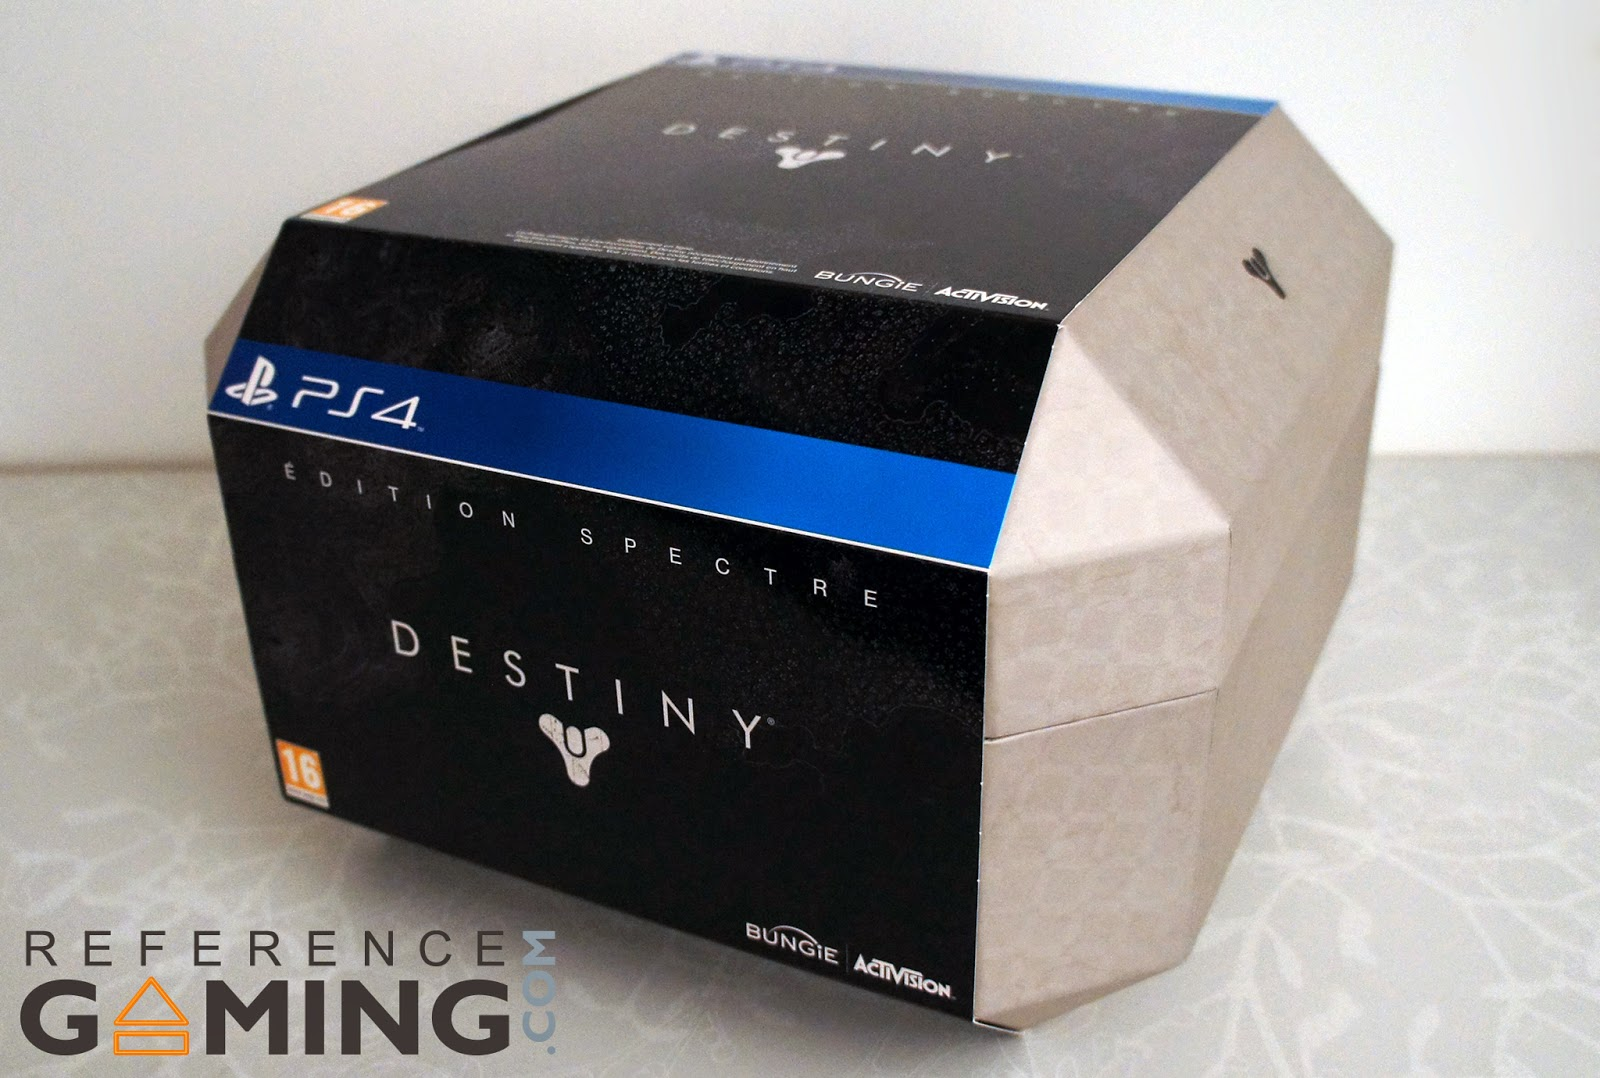 Photo de l'Édition spectre de Destiny